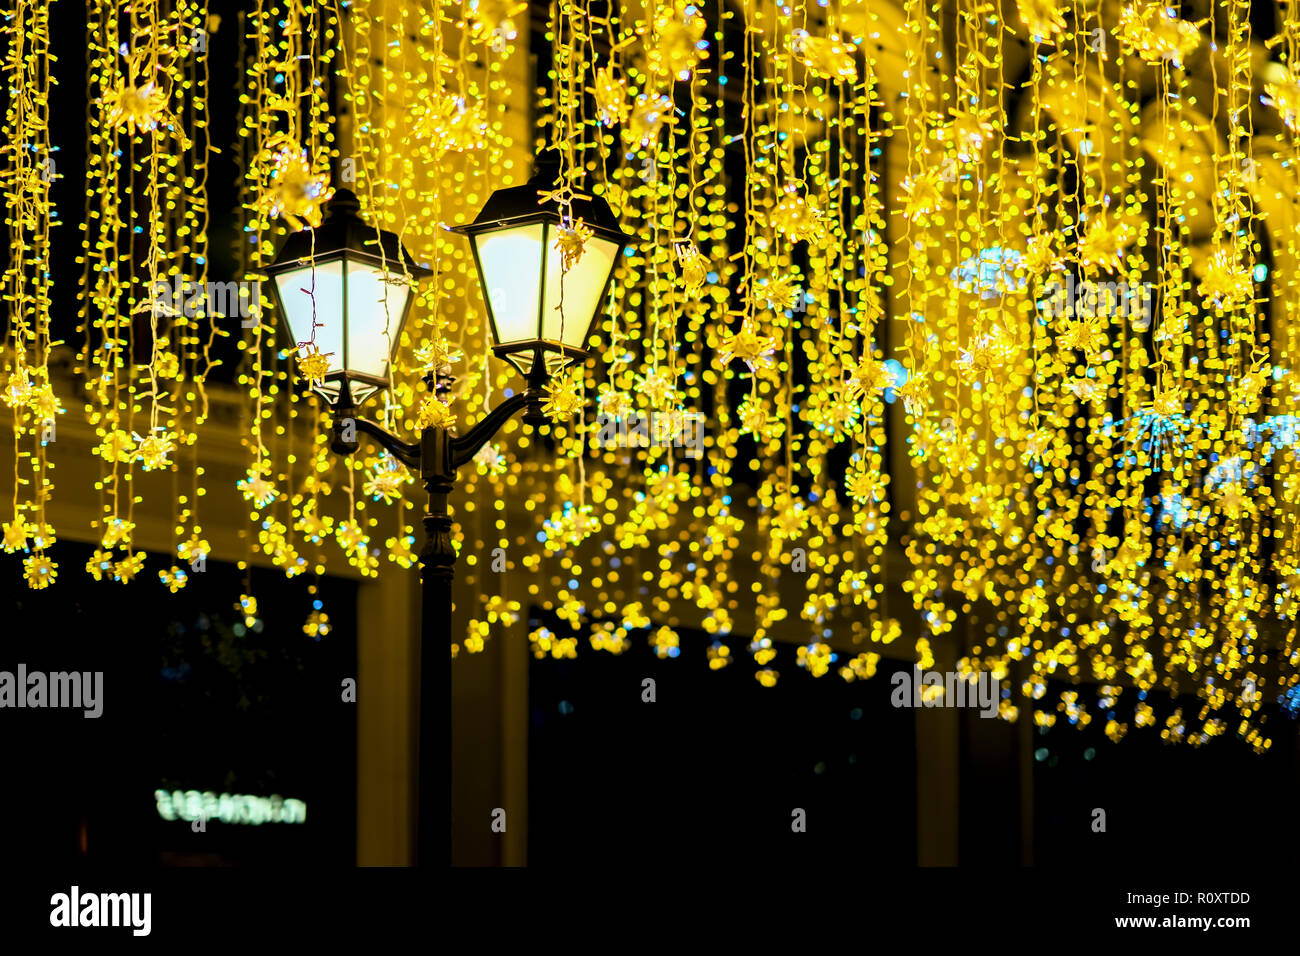 Metal lantern on background of shiny neon garland, night, city street. Fall, fest backdrop. Festive occasions concept, holiday, Christmas, New Year backdrop - Stock Image